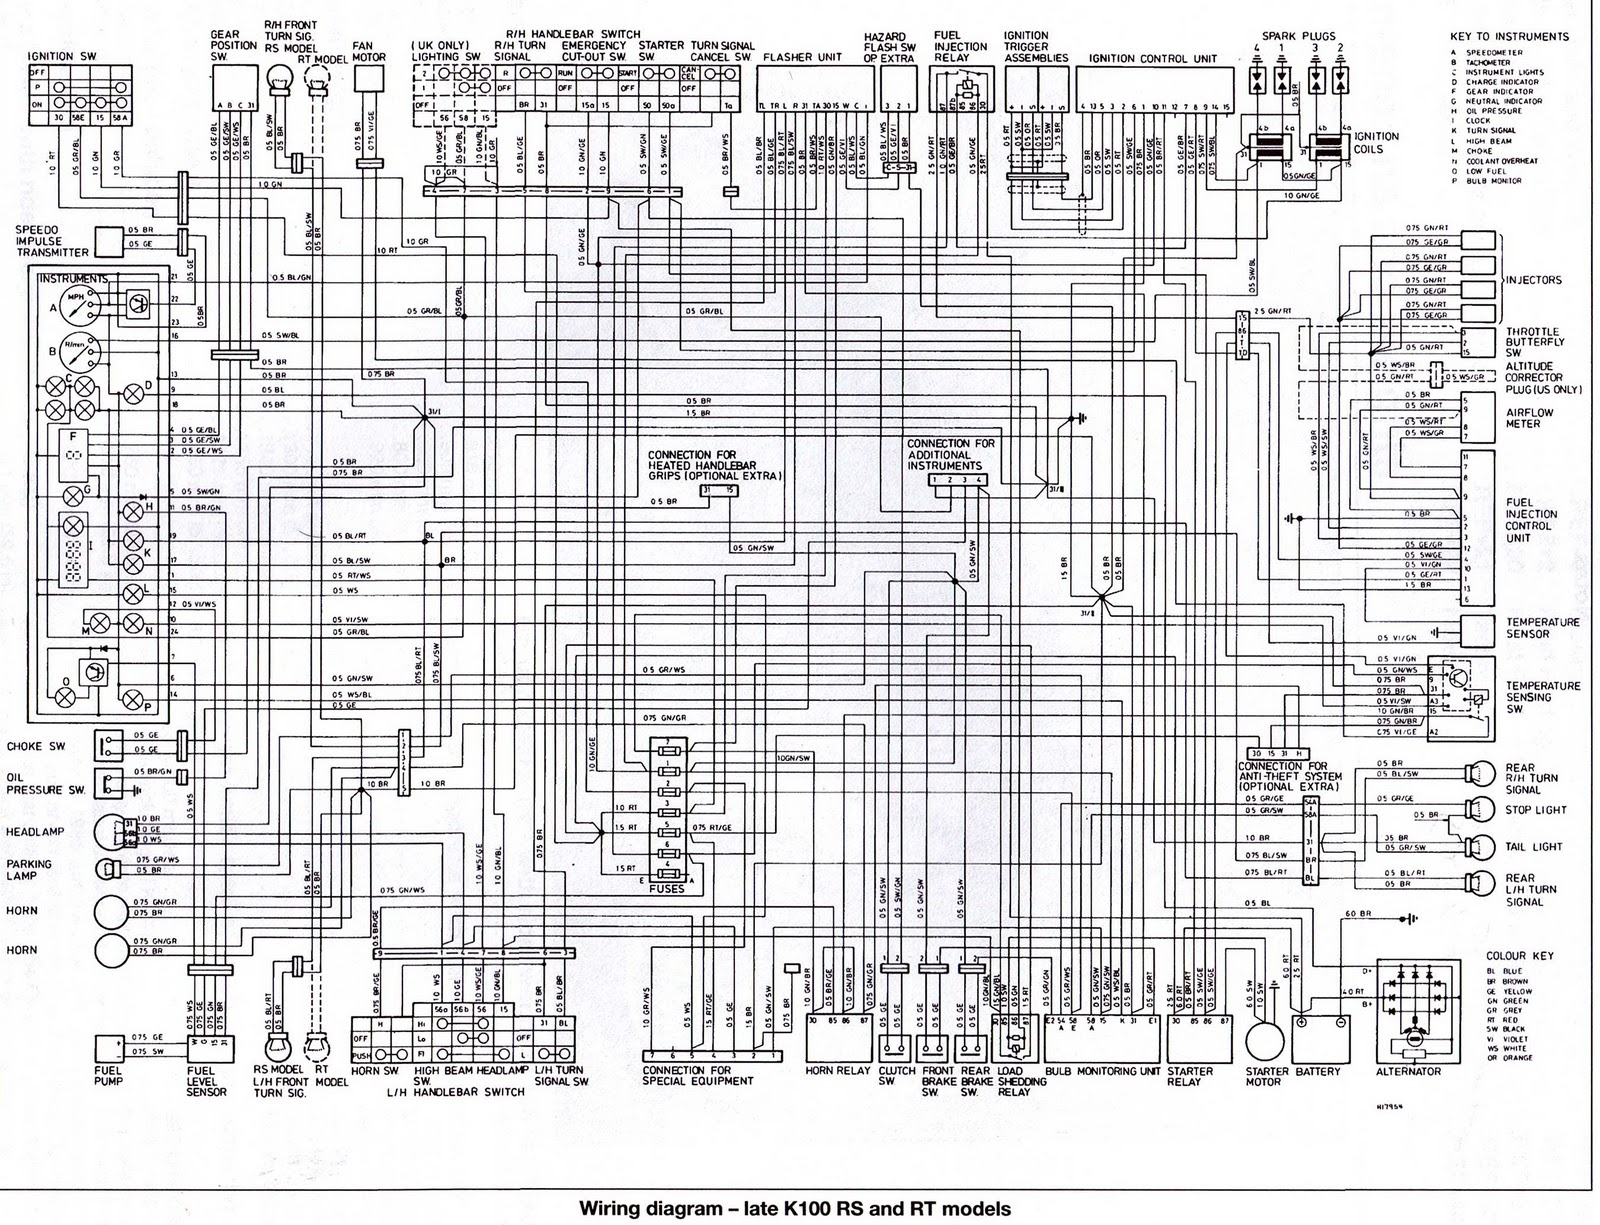 BMW+KR100RS RT+Wiring+Diagram bmw e38 wiring diagram bmw wds download \u2022 free wiring diagrams e39 m5 dsp wiring diagram at honlapkeszites.co